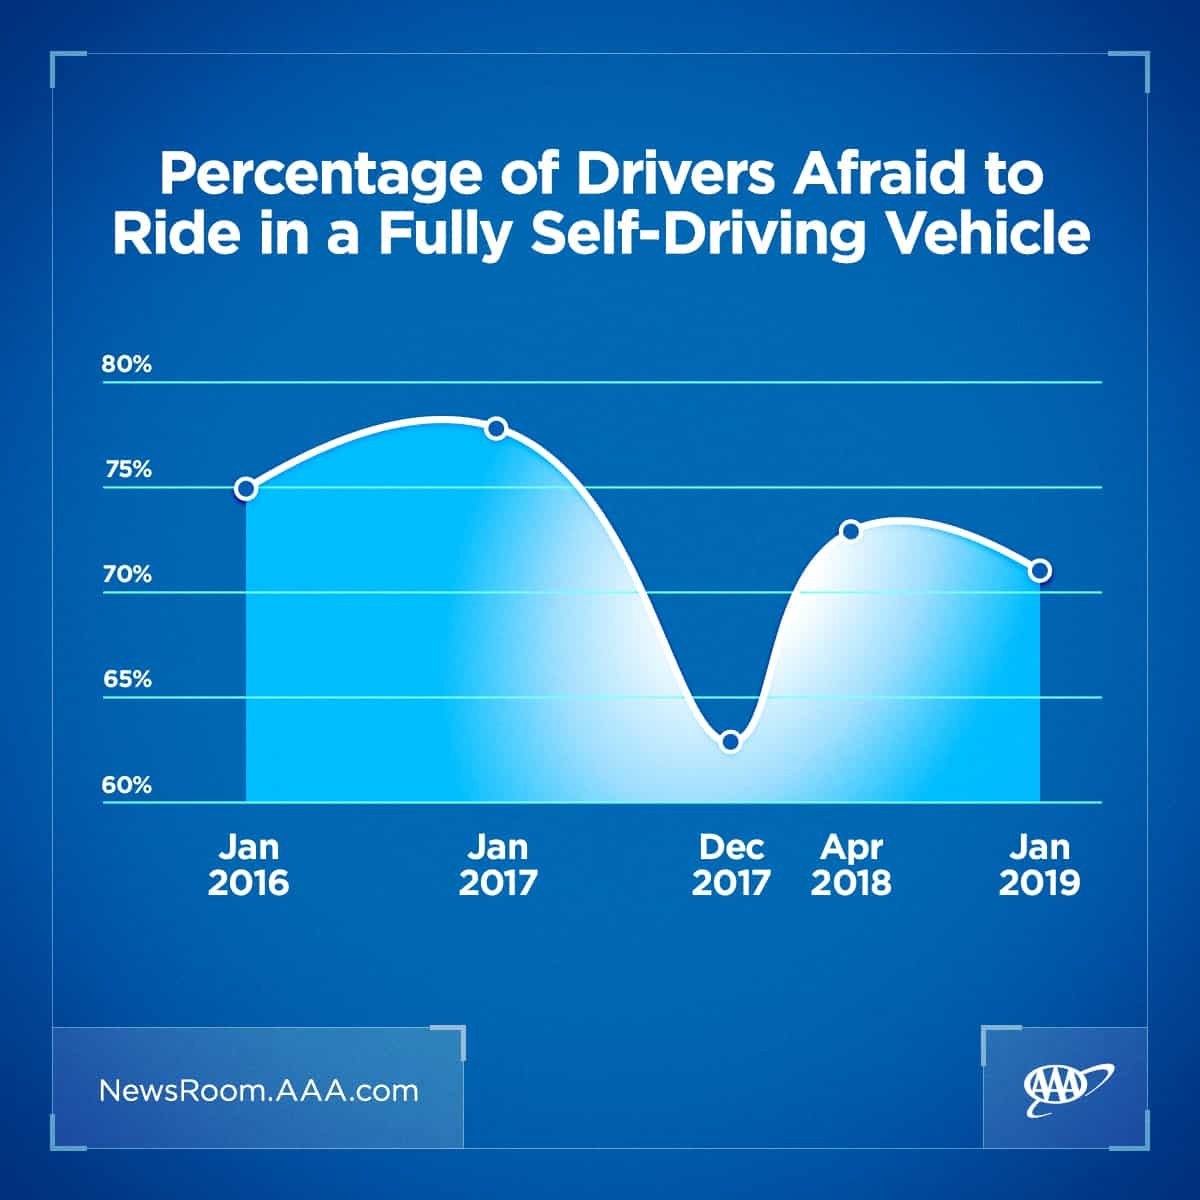 Percentage of drivers agraid to ride in a fully self-driven vehicle